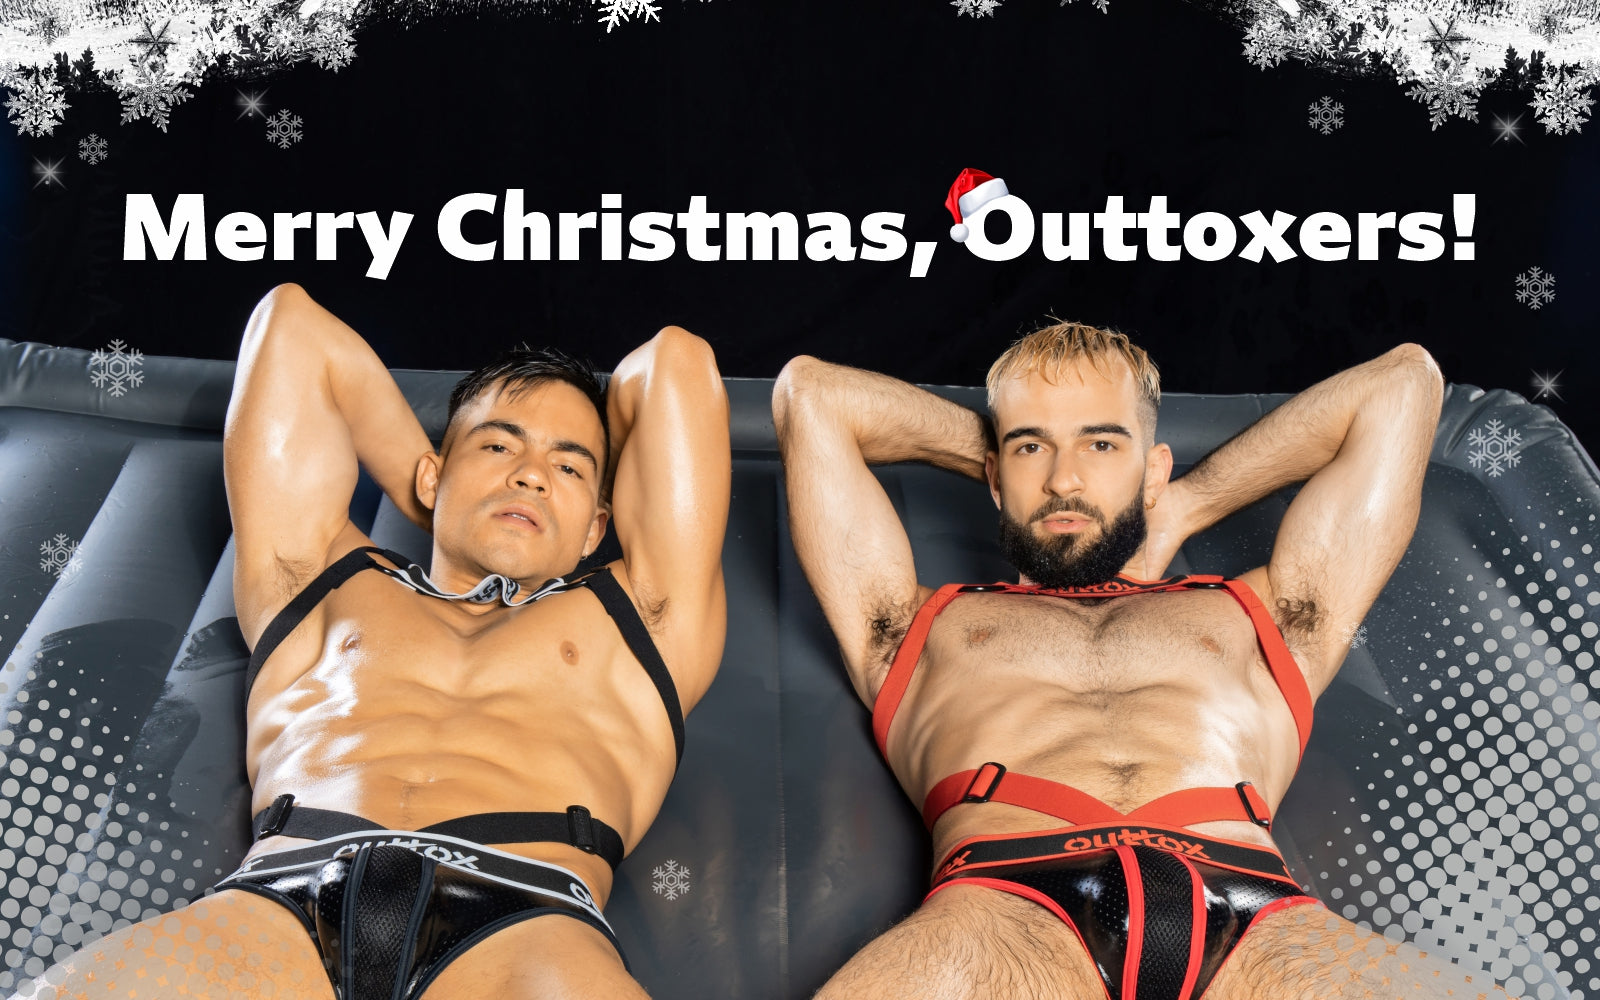 Merry Christmas, Outtoxers!